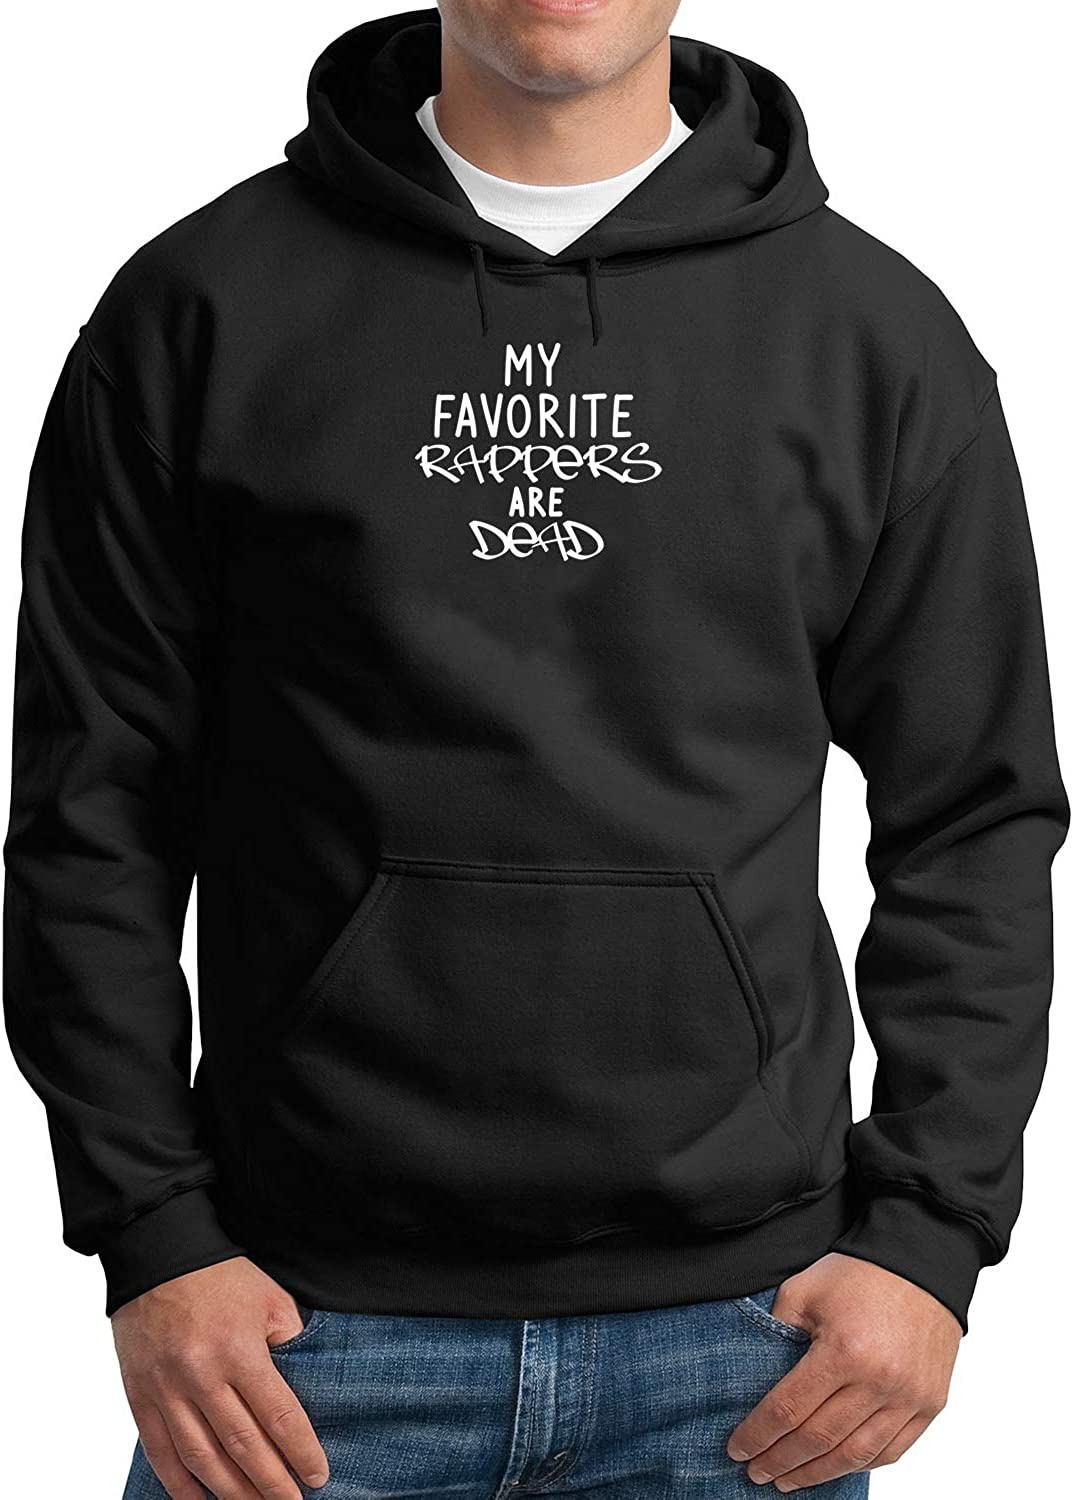 Black My Favourite Rappers are Dead/_MA3467 Hoodie Hoody Sweater